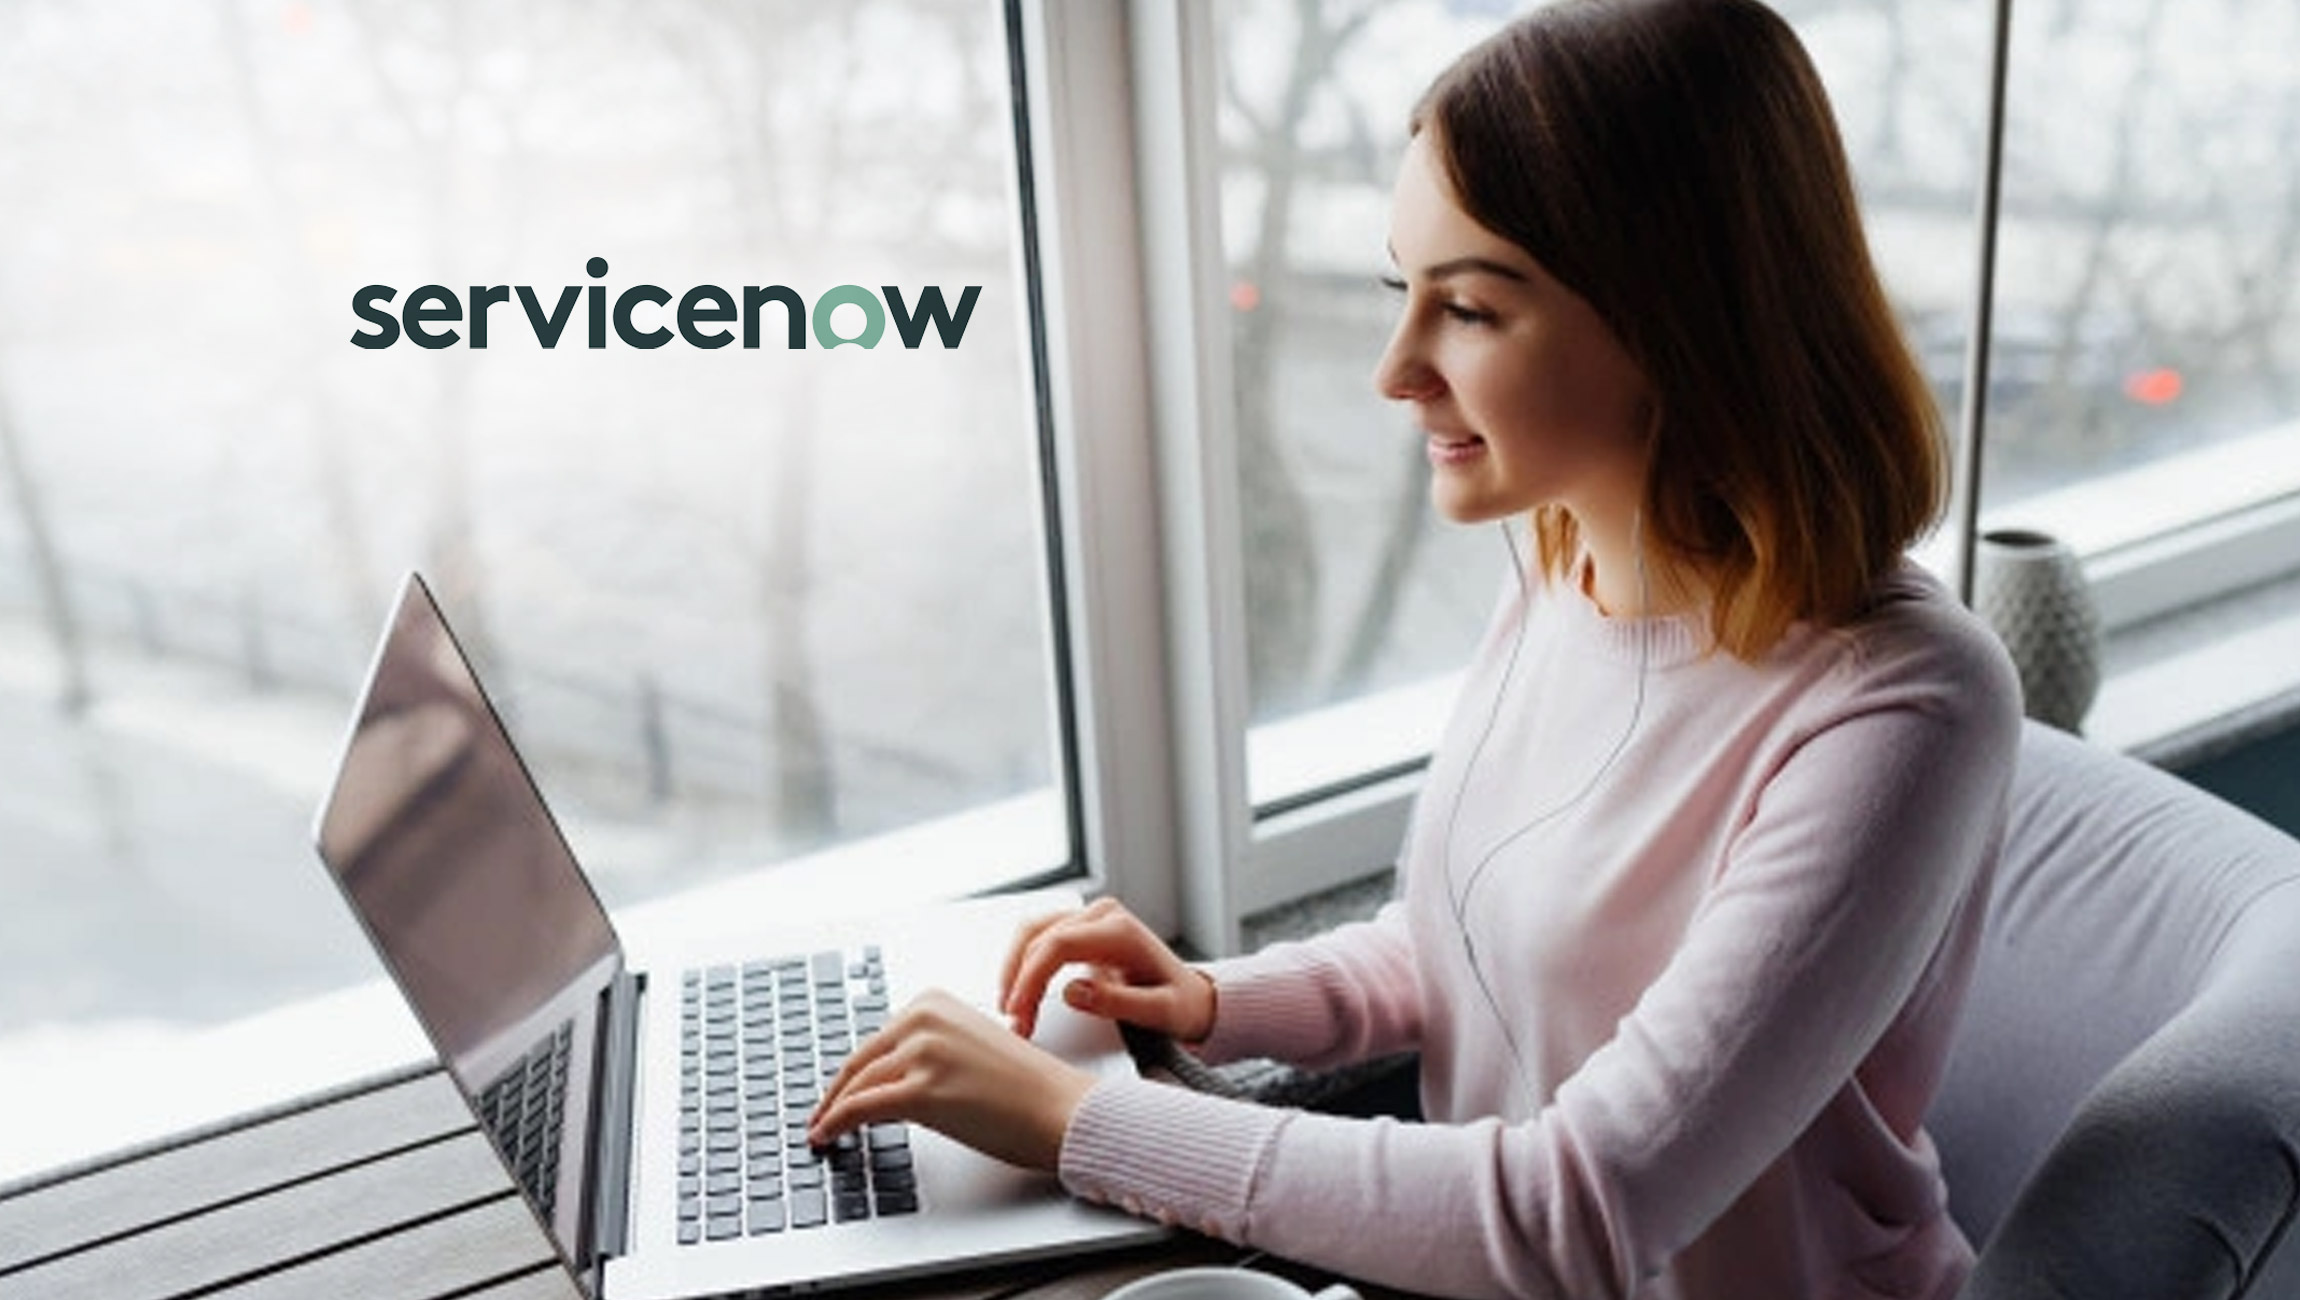 ServiceNow Named a Leader in the 2021 Gartner® Magic Quadrant™ for Enterprise Low-Code Application Platforms for Second Consecutive Year